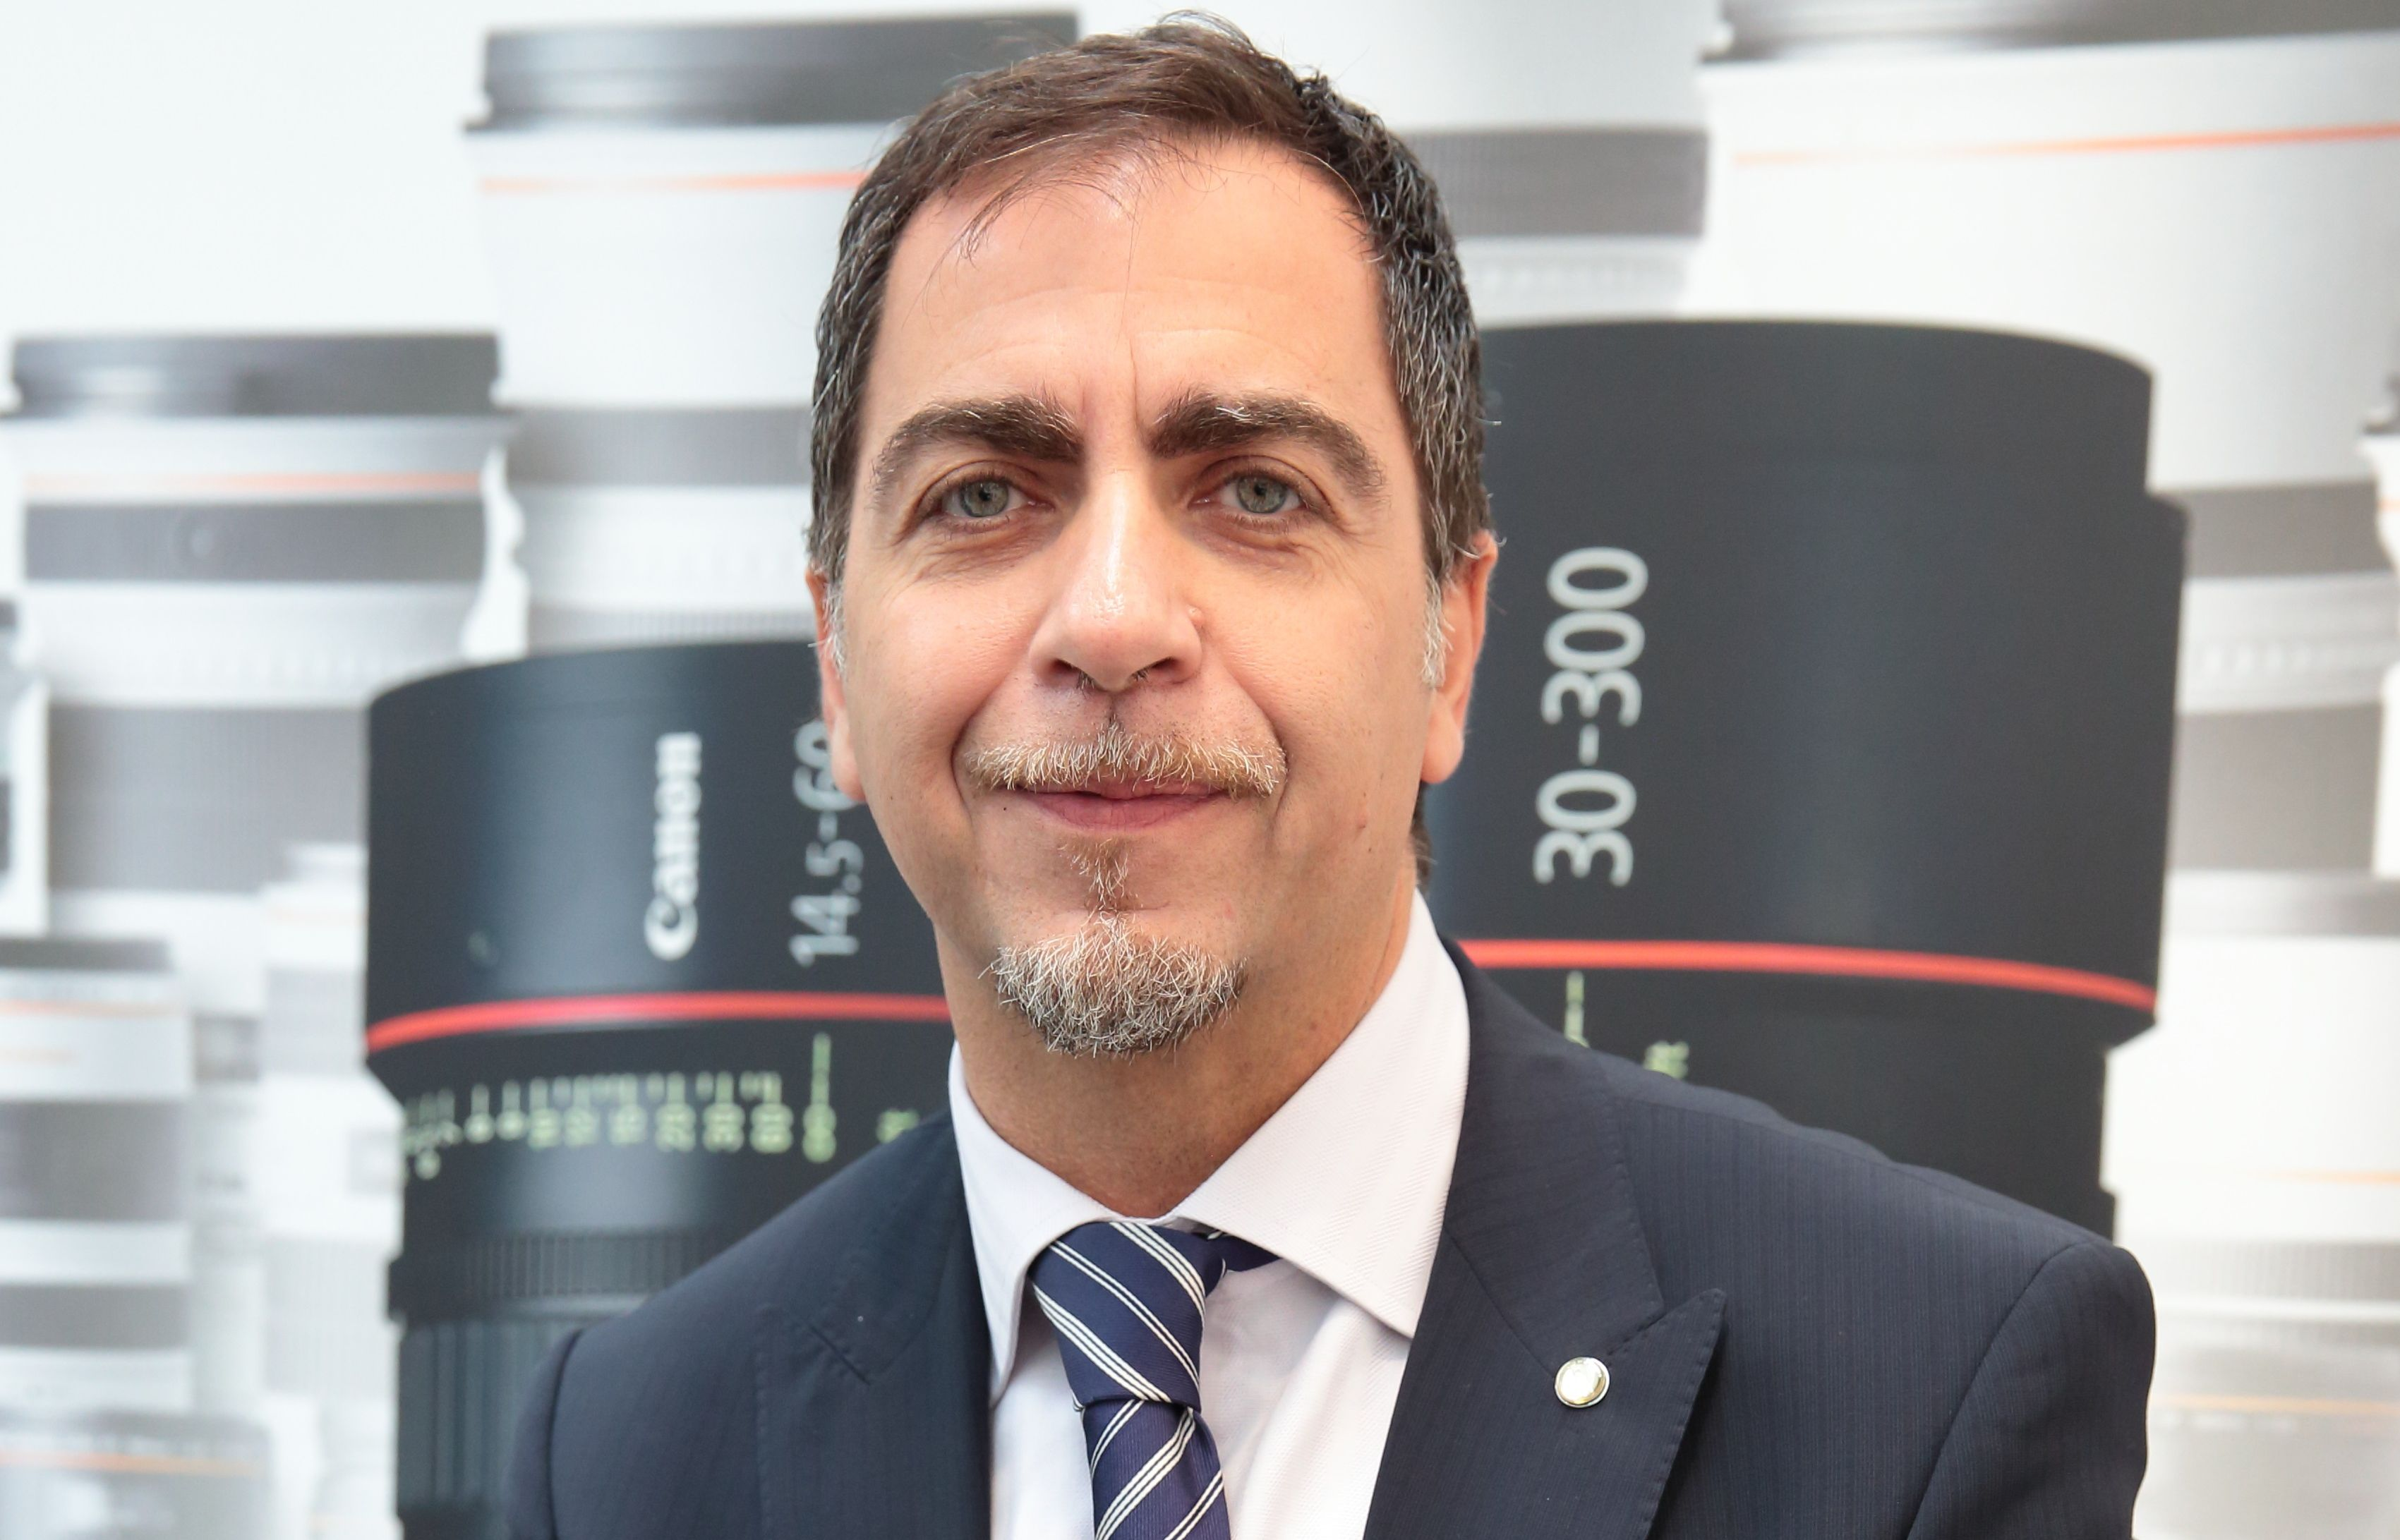 Massimiliano Ceravolo, Director Information & Imaging Solutions di Canon Italia.